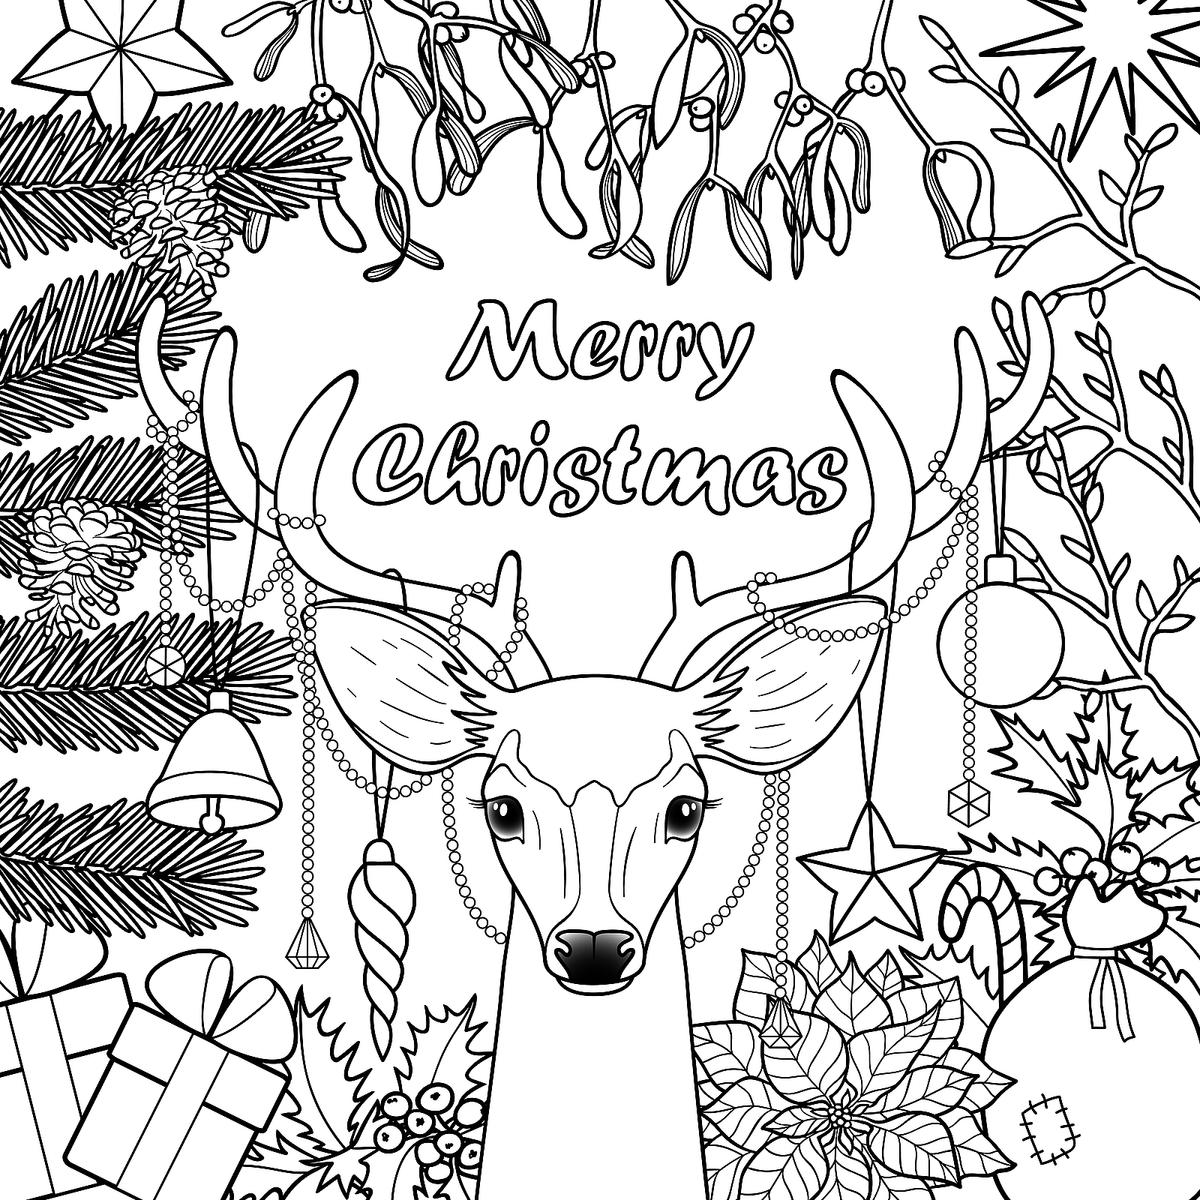 christmas color pages christmas tree coloring pages for childrens printable for free christmas color pages